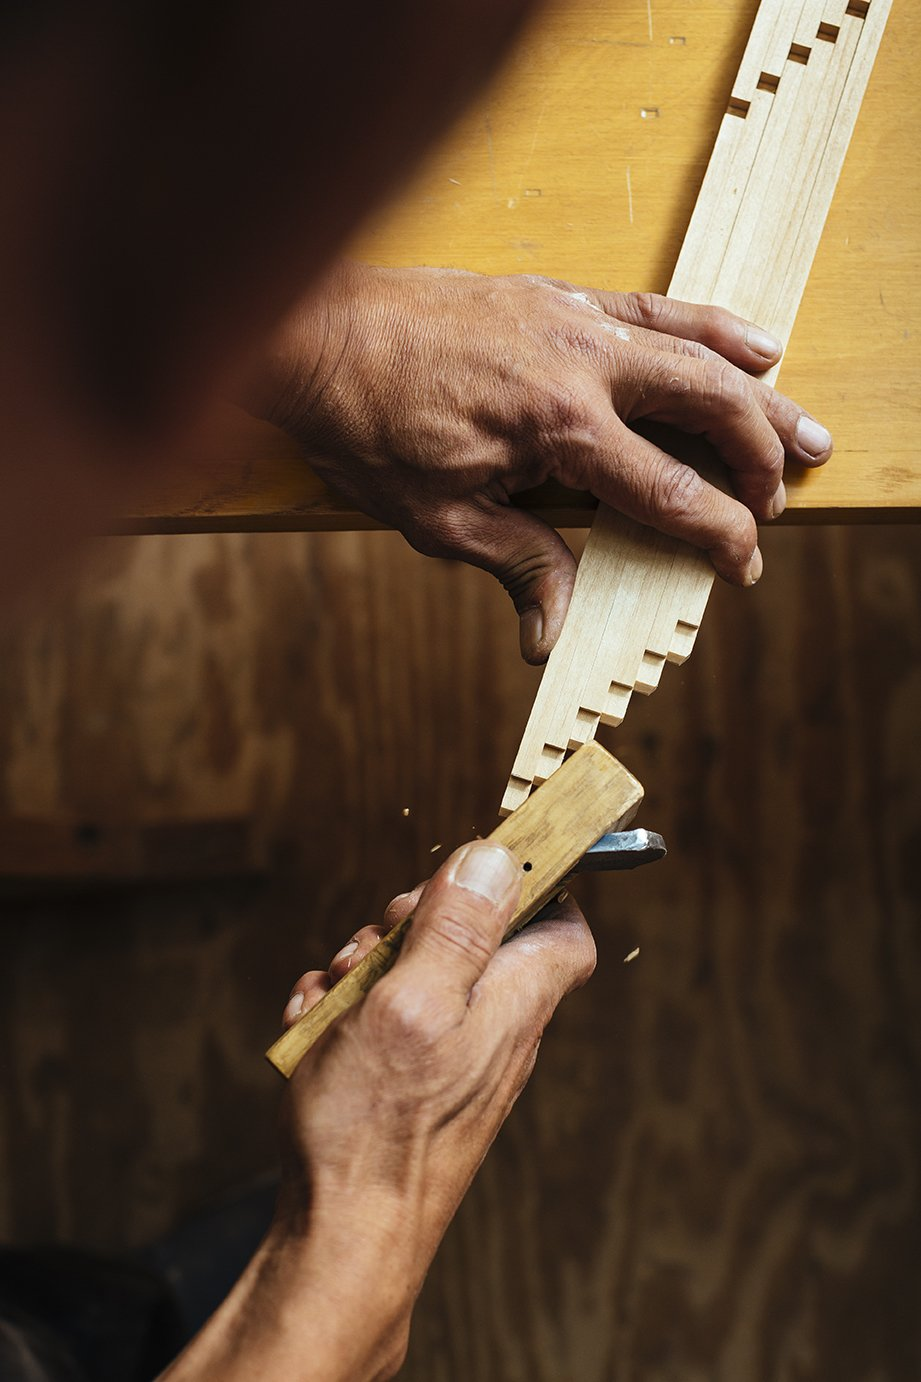 Founded in 1951, Miya Shoji uses traditional Japanese furniture-building techniques to craft its signature shoji screens. Carpenters at its 3,000-square-foot facility in Queens fashion lap joints and tenons by hand to fit the pieces together.  Photo 2 of 7 in Undivided Attention